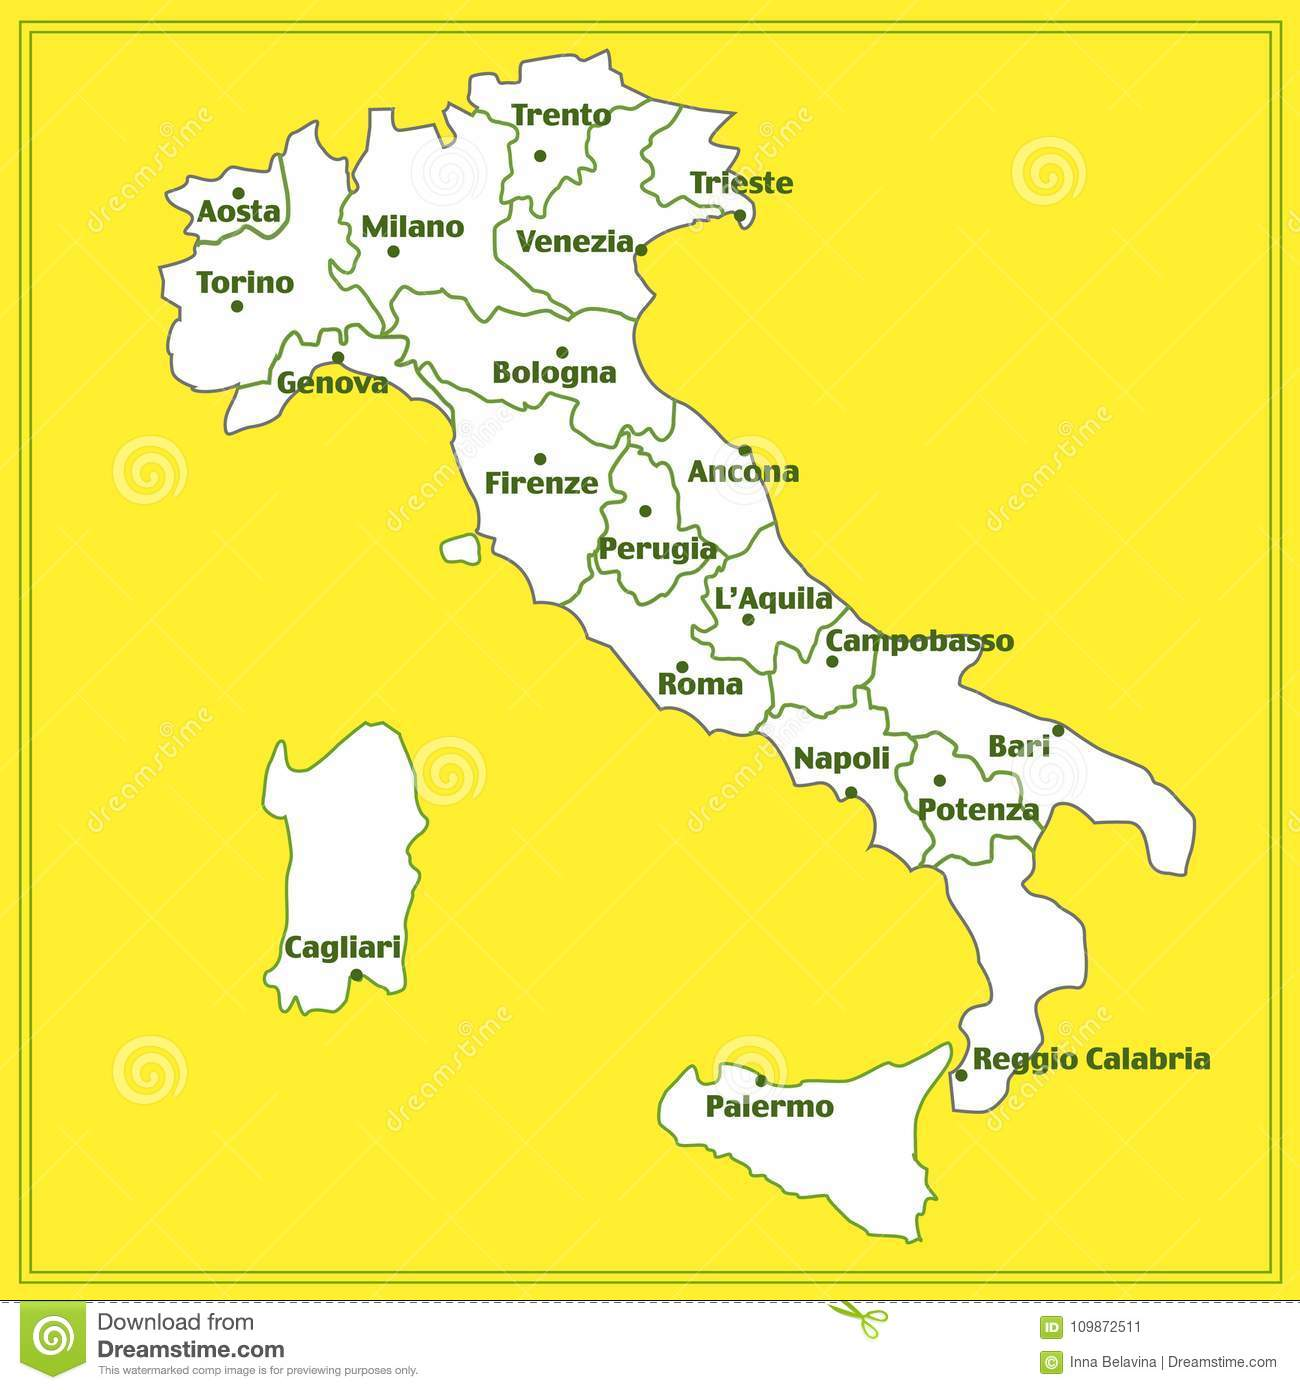 Map Of Italy In Italian.Map Of Italy With Red Background Italy Map With Italian Big Cities